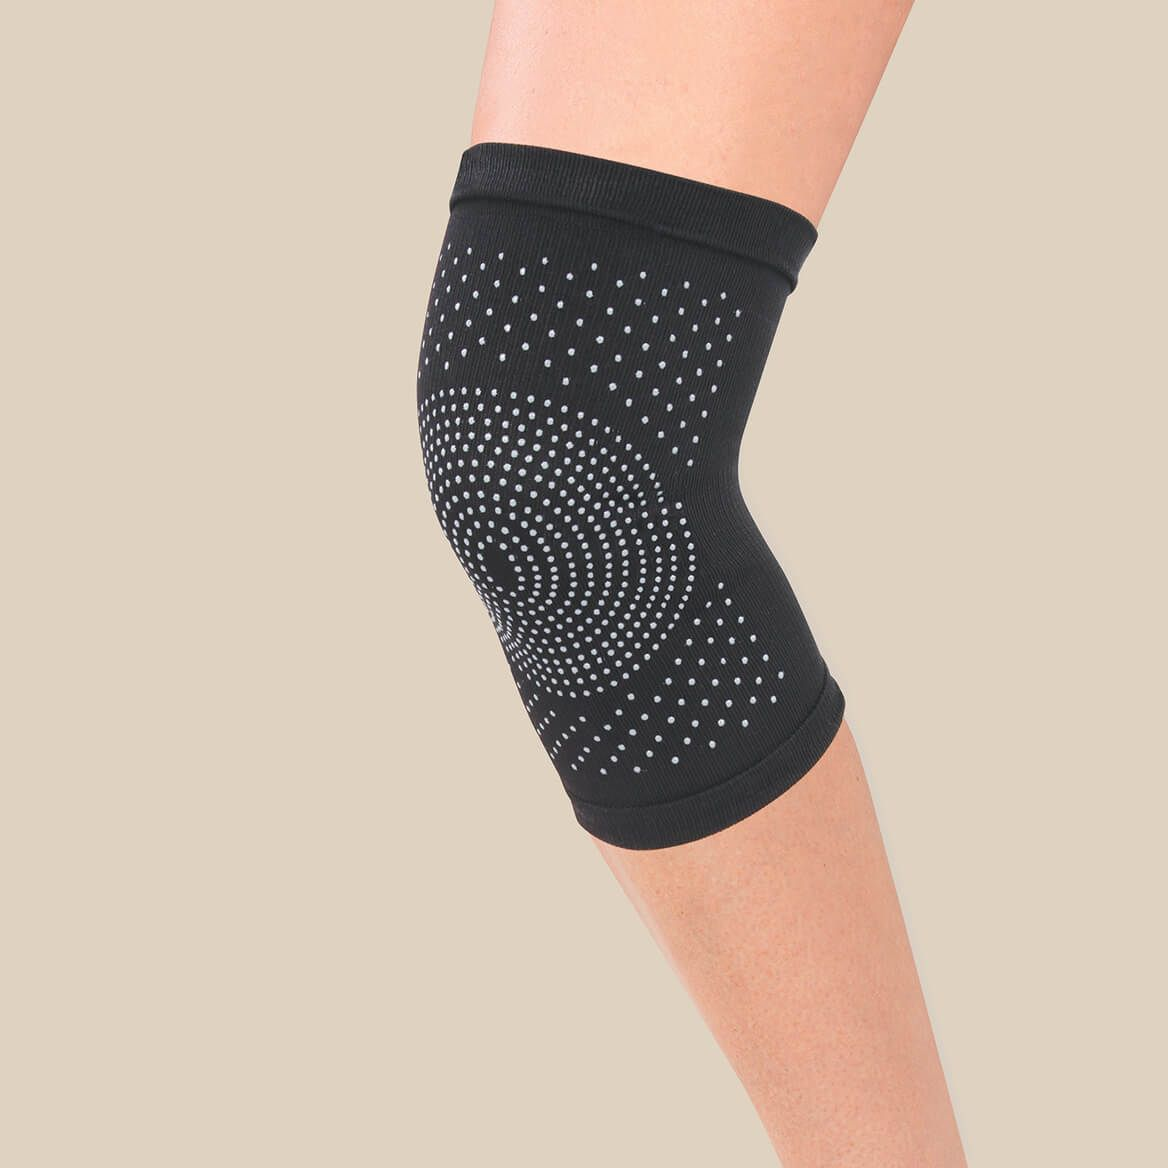 Infrared Compression Knee Support-370049